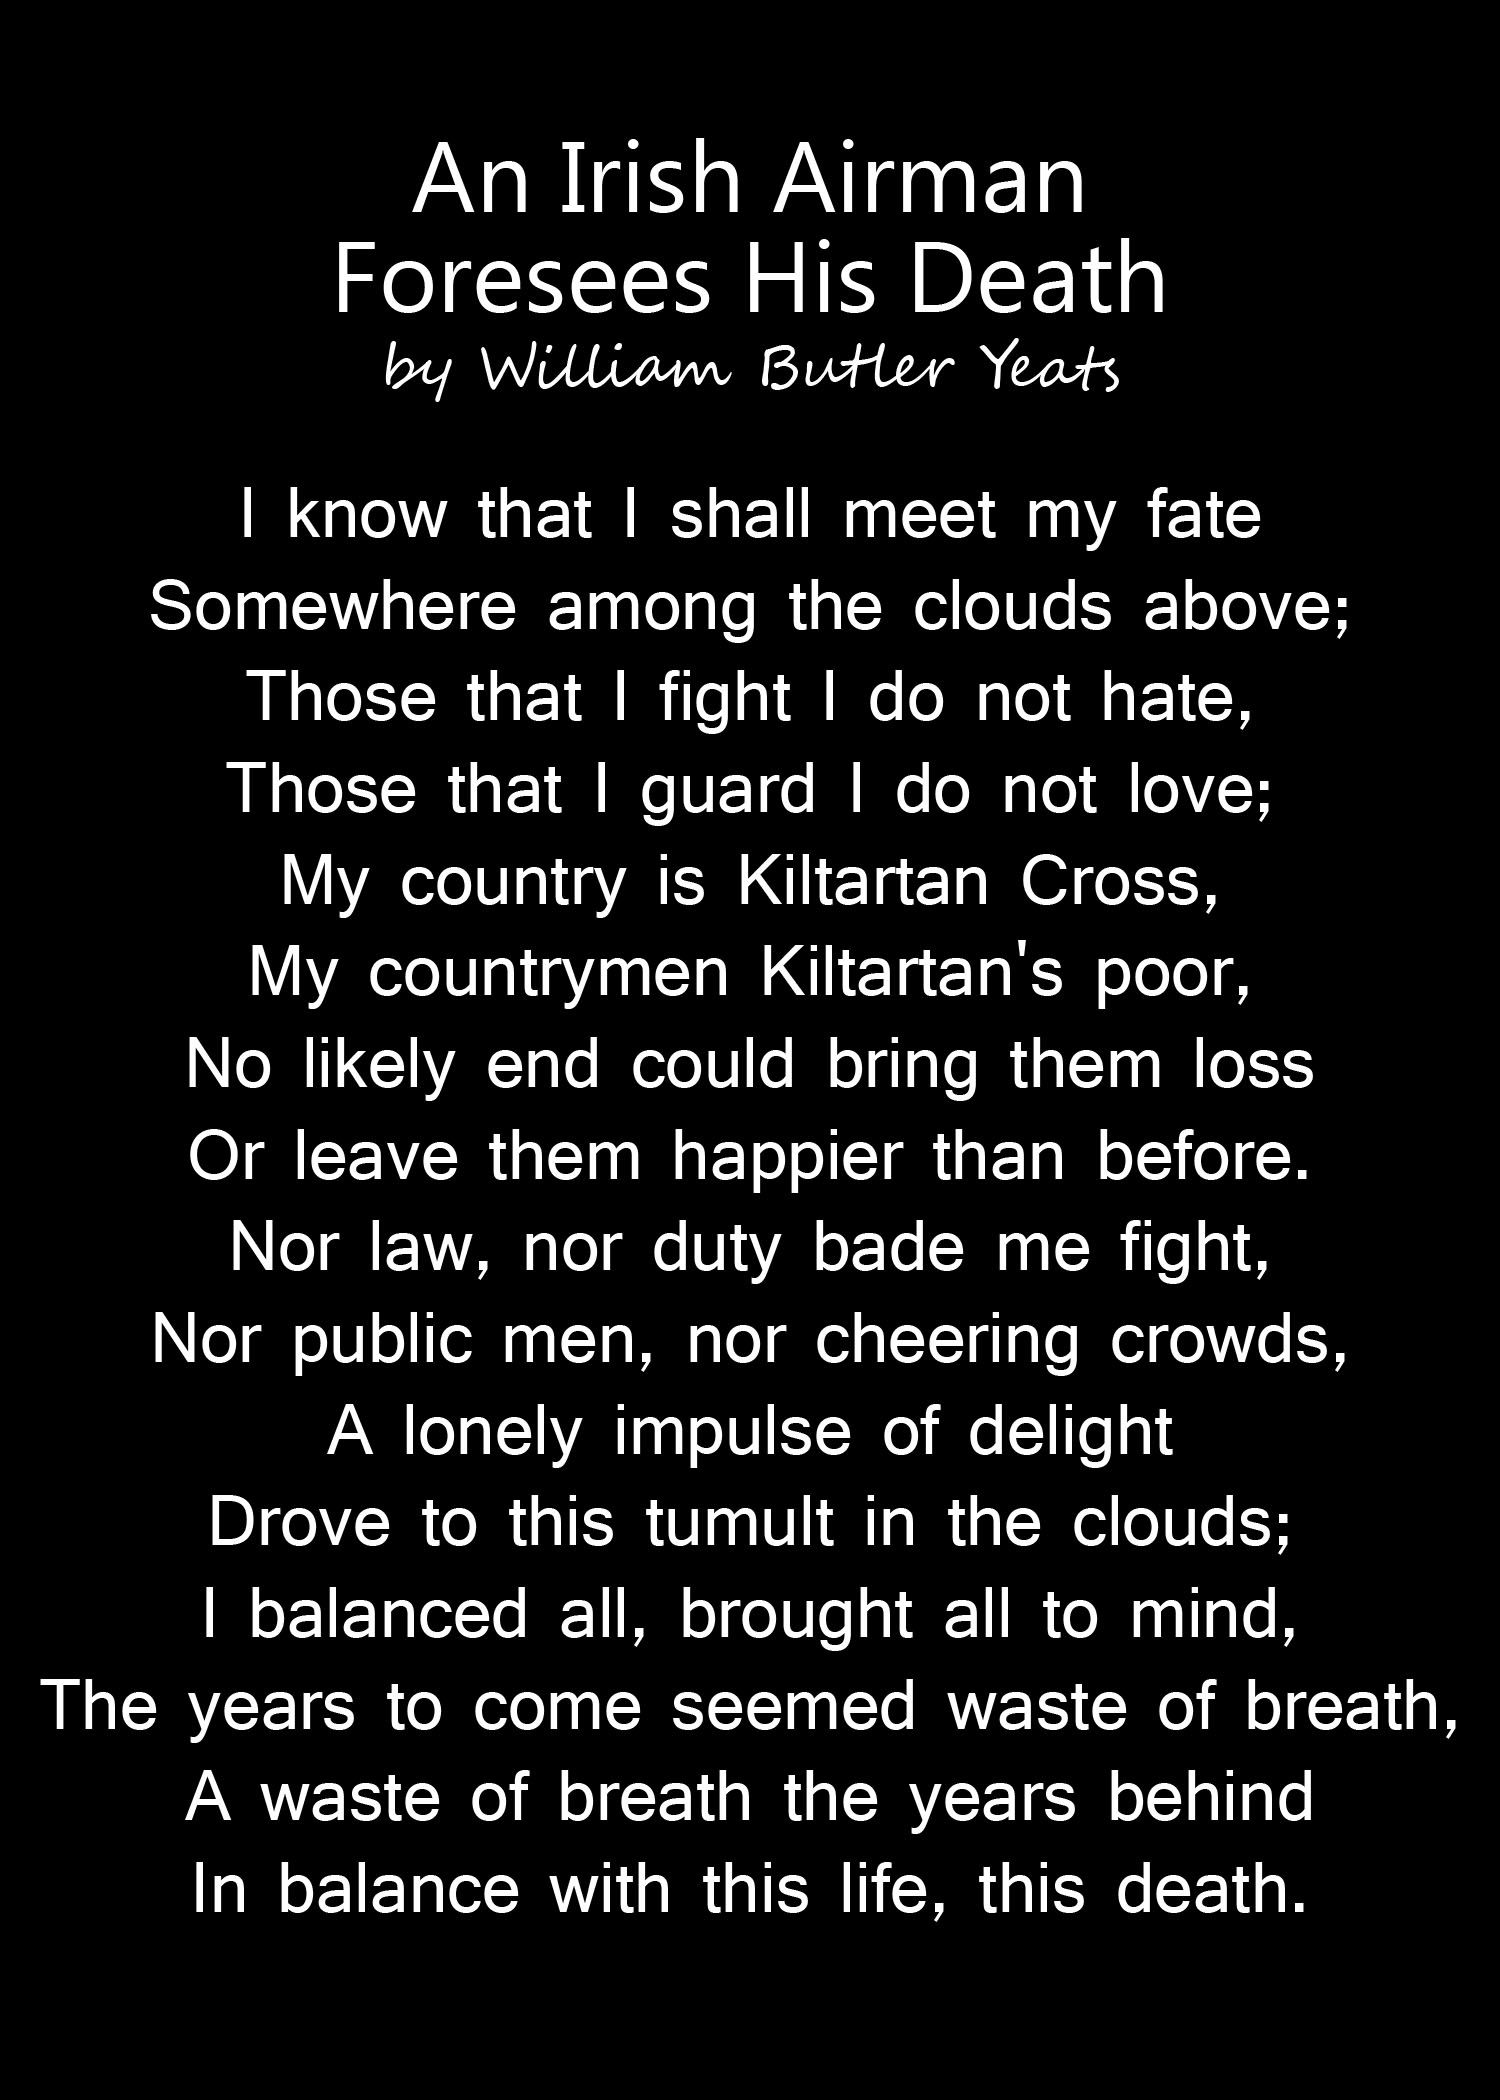 an irish airman foresees his death by william butler yeats ahh an irish airman foresees his death by william butler yeats ahh my favourite poem